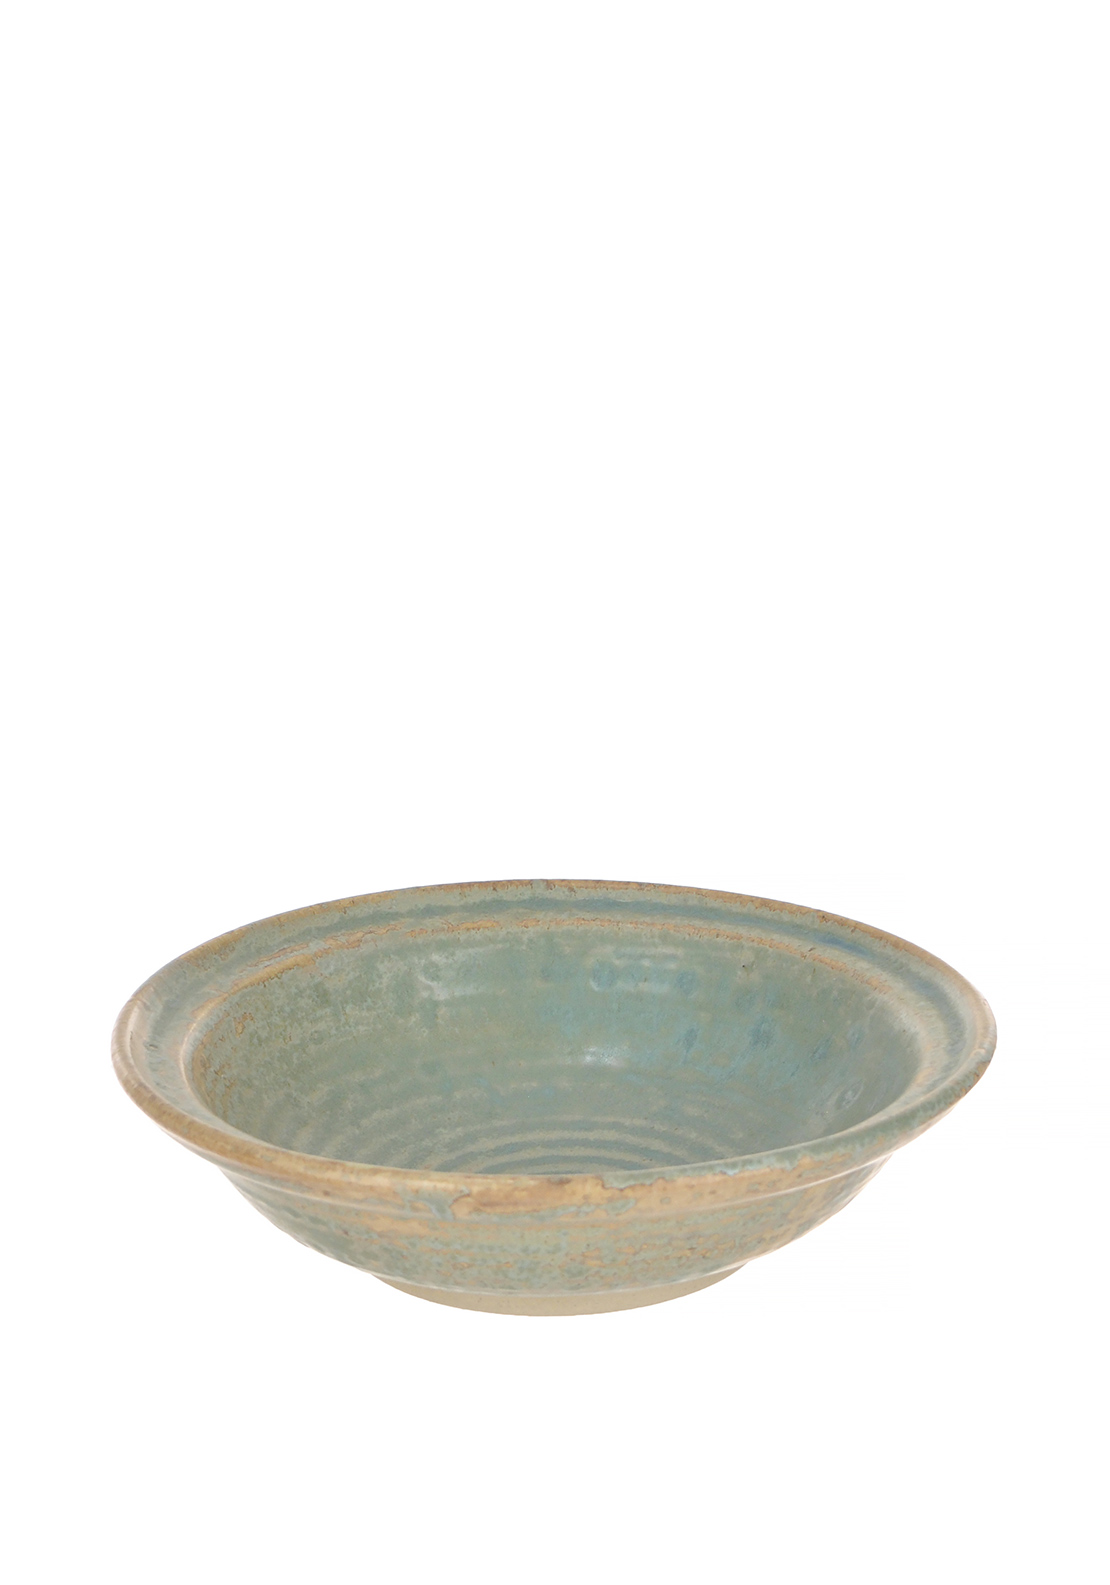 Moville Pottery Pasta Bowl